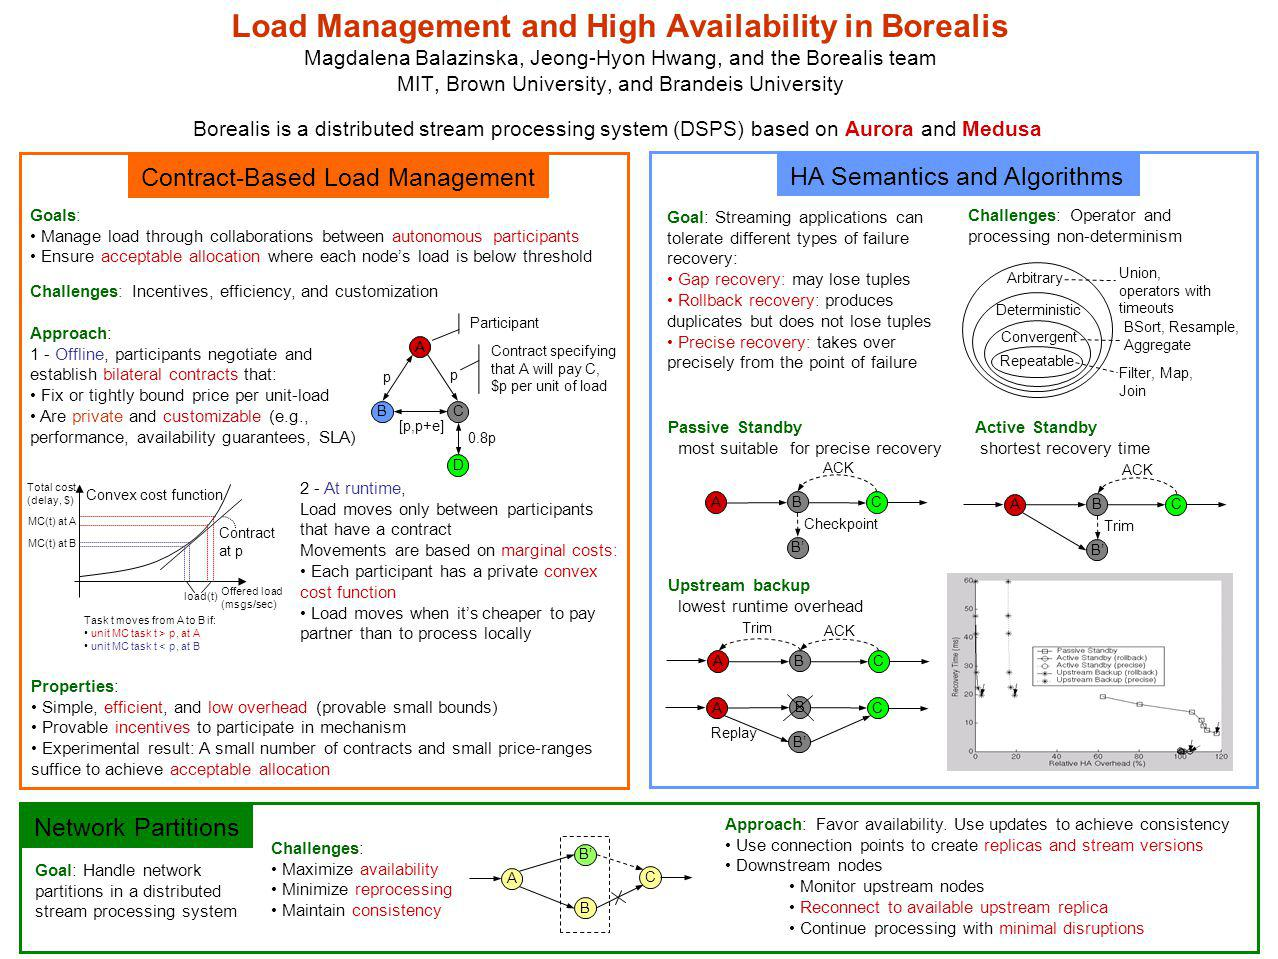 Load Management Demonstration Setup A CB D 2) As node A becomes overloaded it sheds load to its partners B and C until system reaches acceptable allocation A CB 0.8p 3) Load increases at node B causing system overload 4) Node D joins the system.